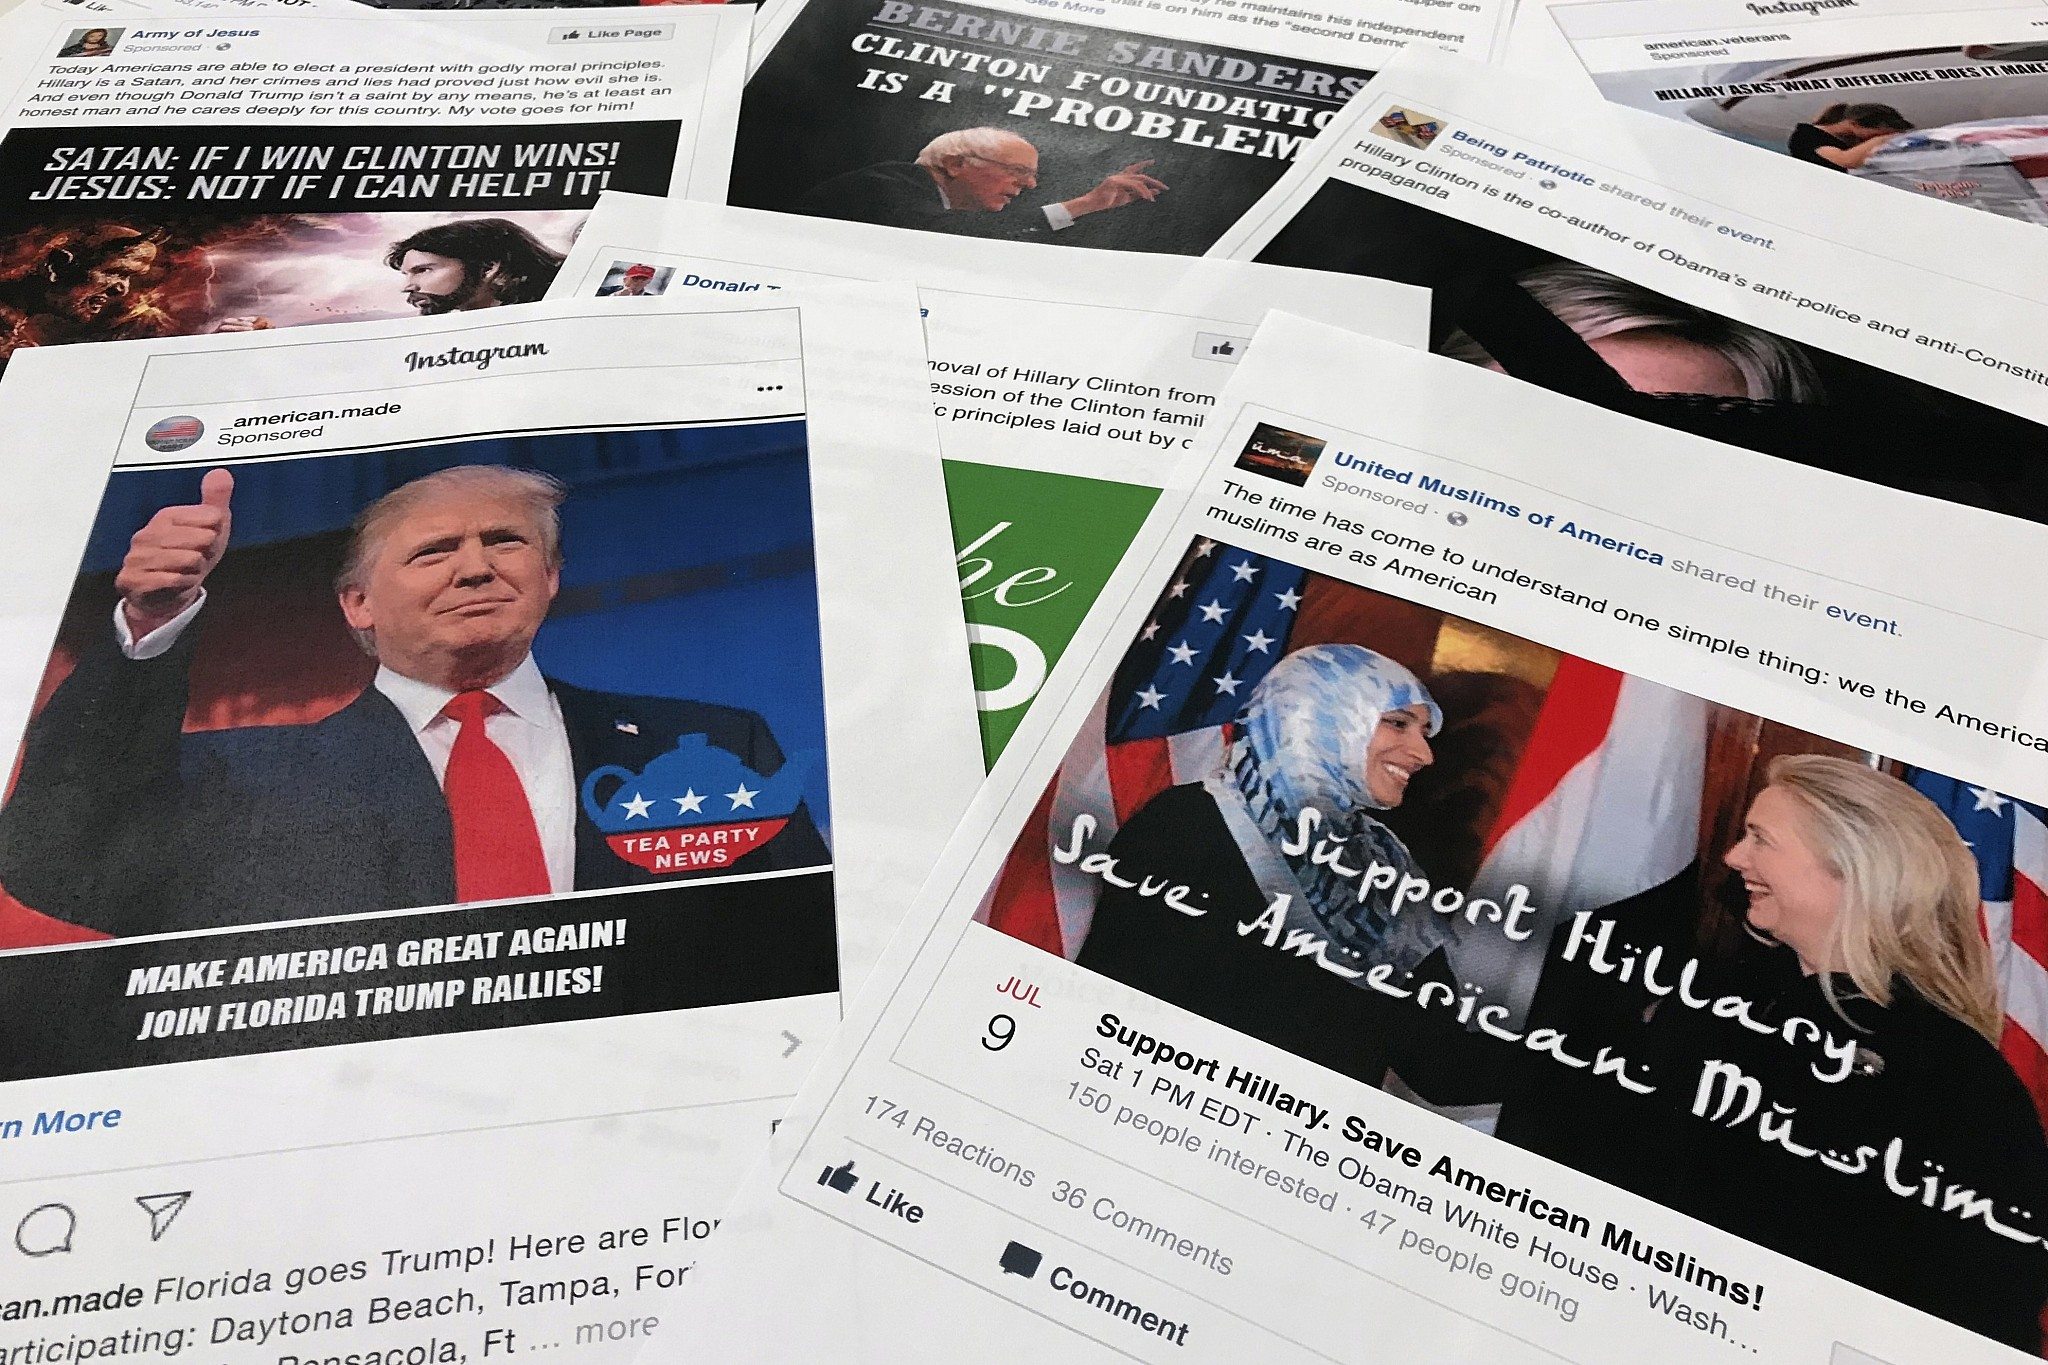 Russian Disinformation Campaign in Support of Trump Reportedly Intensified After 2016 Election